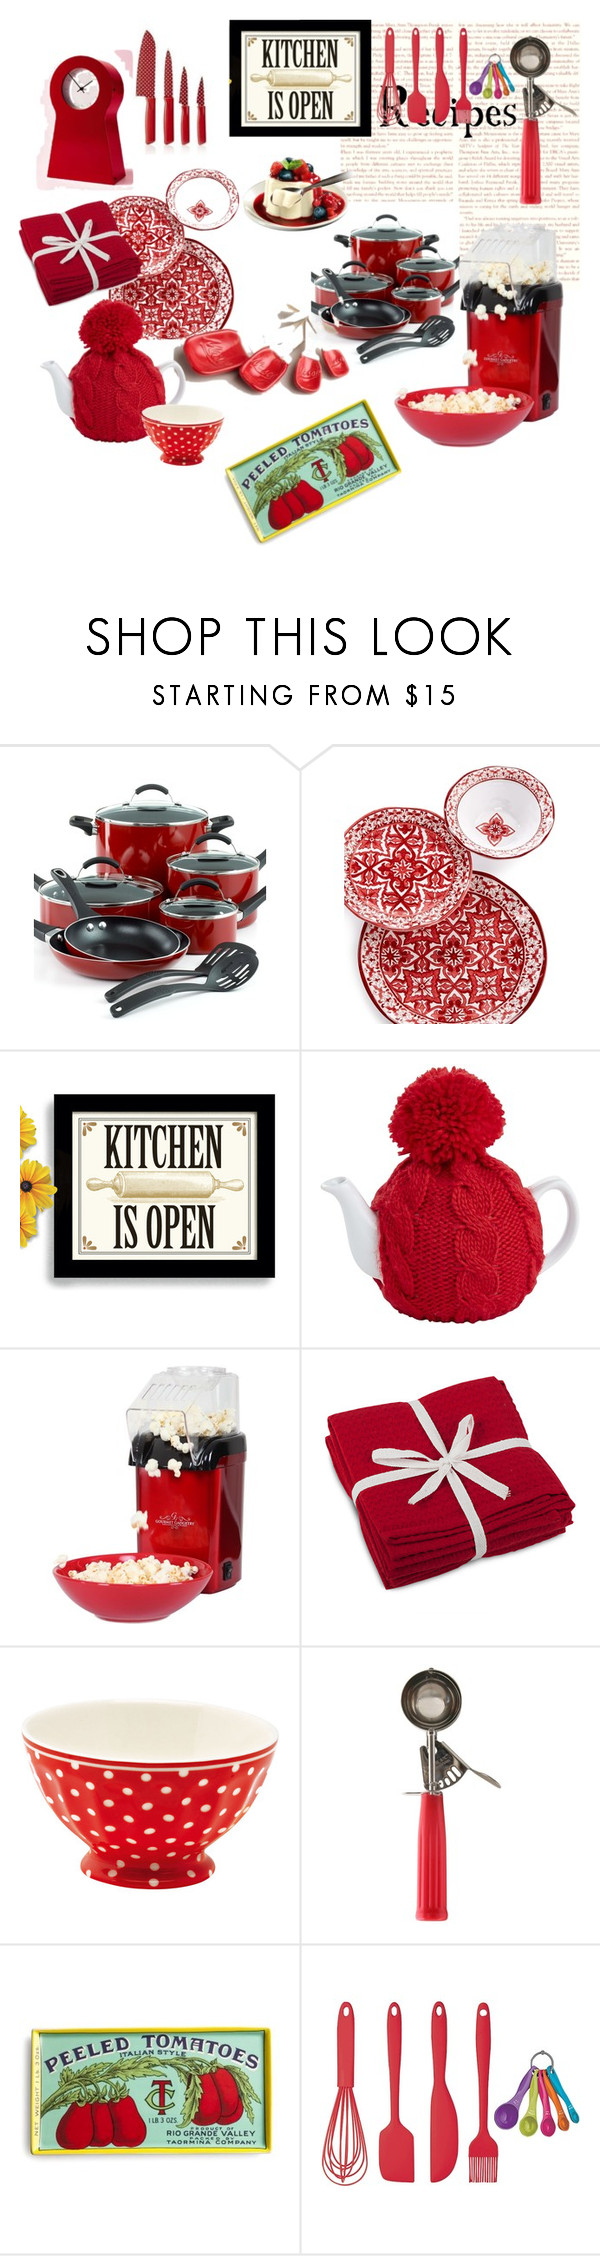 """""""Red in my kitchen"""" by gagenna ❤ liked on Polyvore featuring interior, interiors, interior design, home, home decor, interior decorating, Pier 1 Imports, GreenGate, Retrò and Rosanna"""